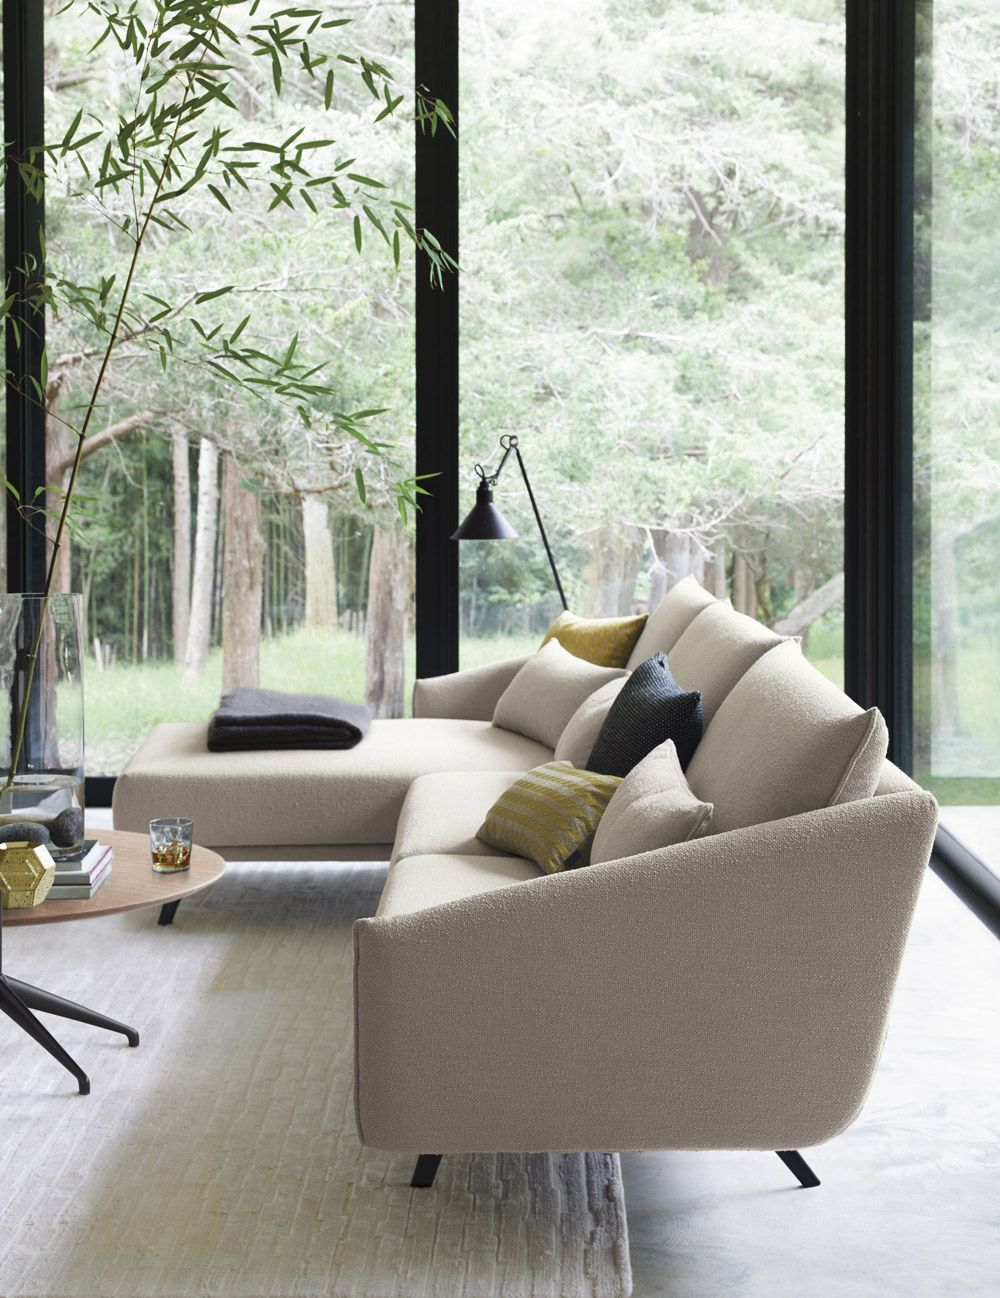 costura sofa collection living rooms ottoman sofa and room rh pinterest com best time of year to buy a sofa best time to buy a sofa furniture sales